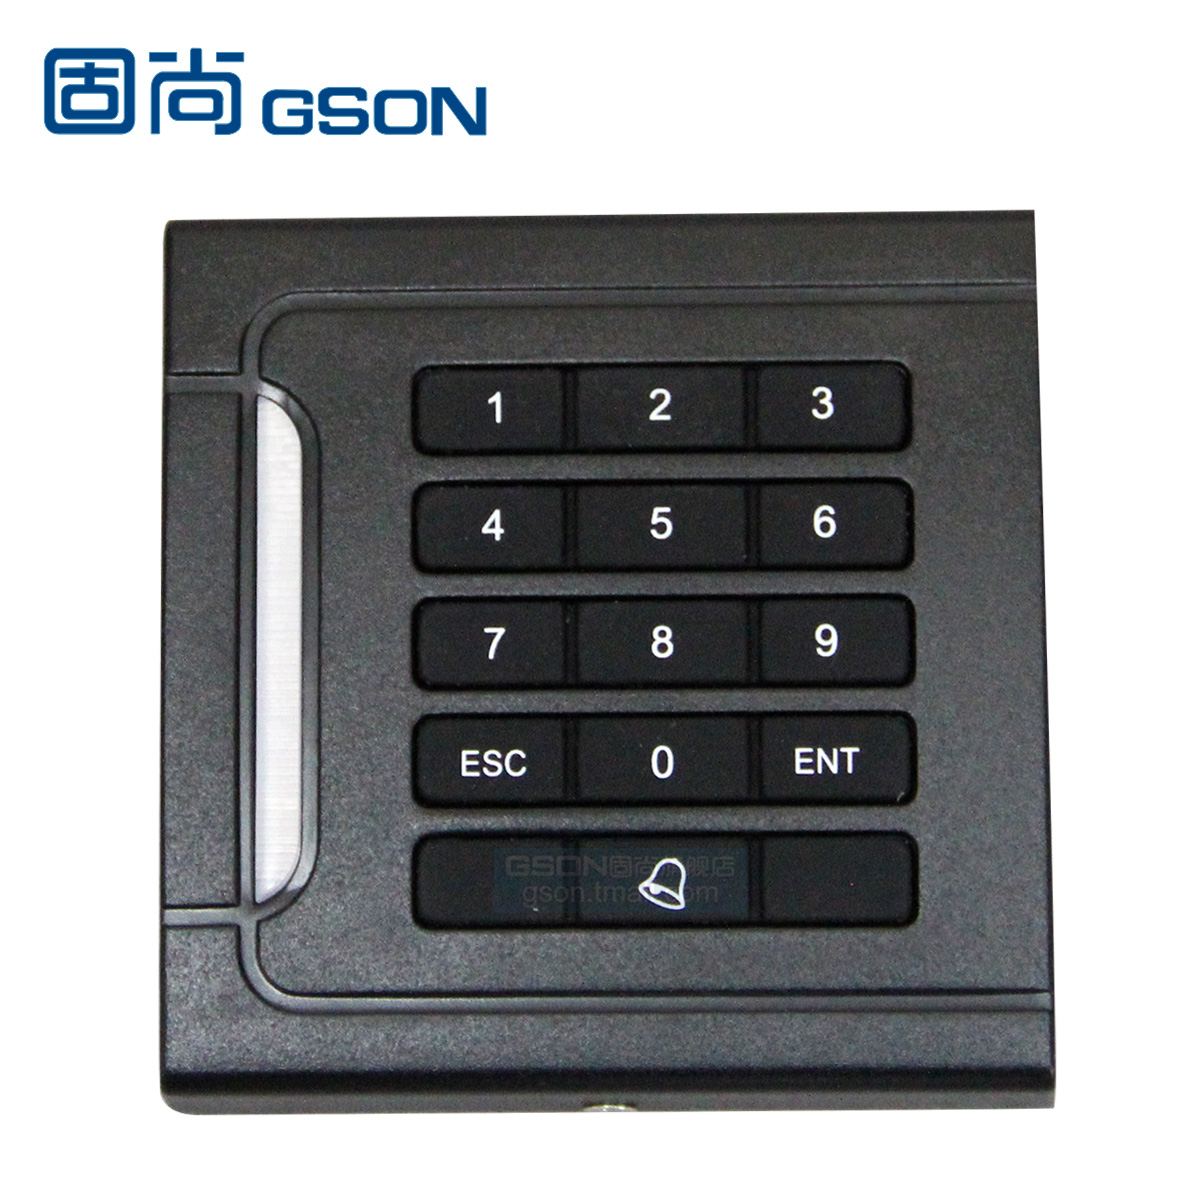 Gson brand independent access one machine card password access control systems access control proximity card access control